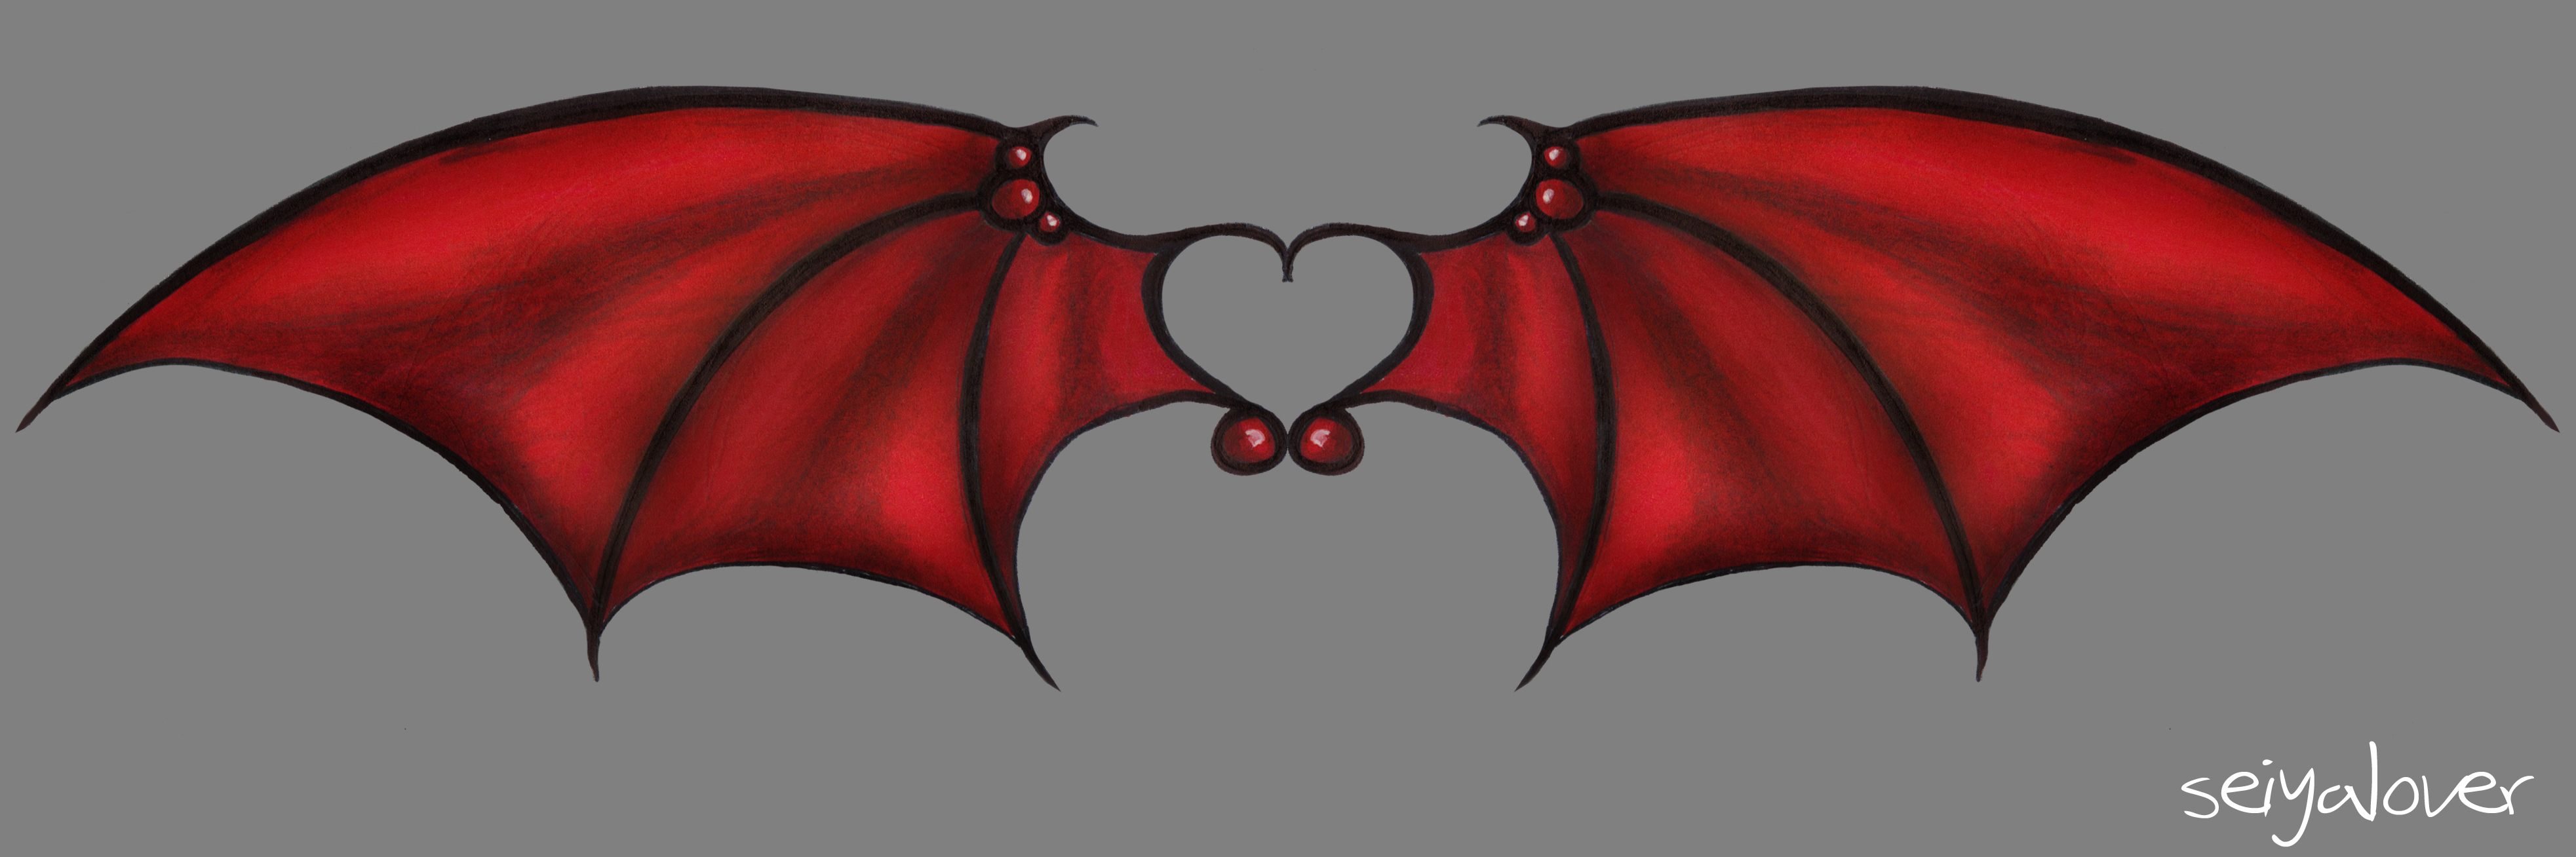 Demon Wings by seiyastock on DeviantArt